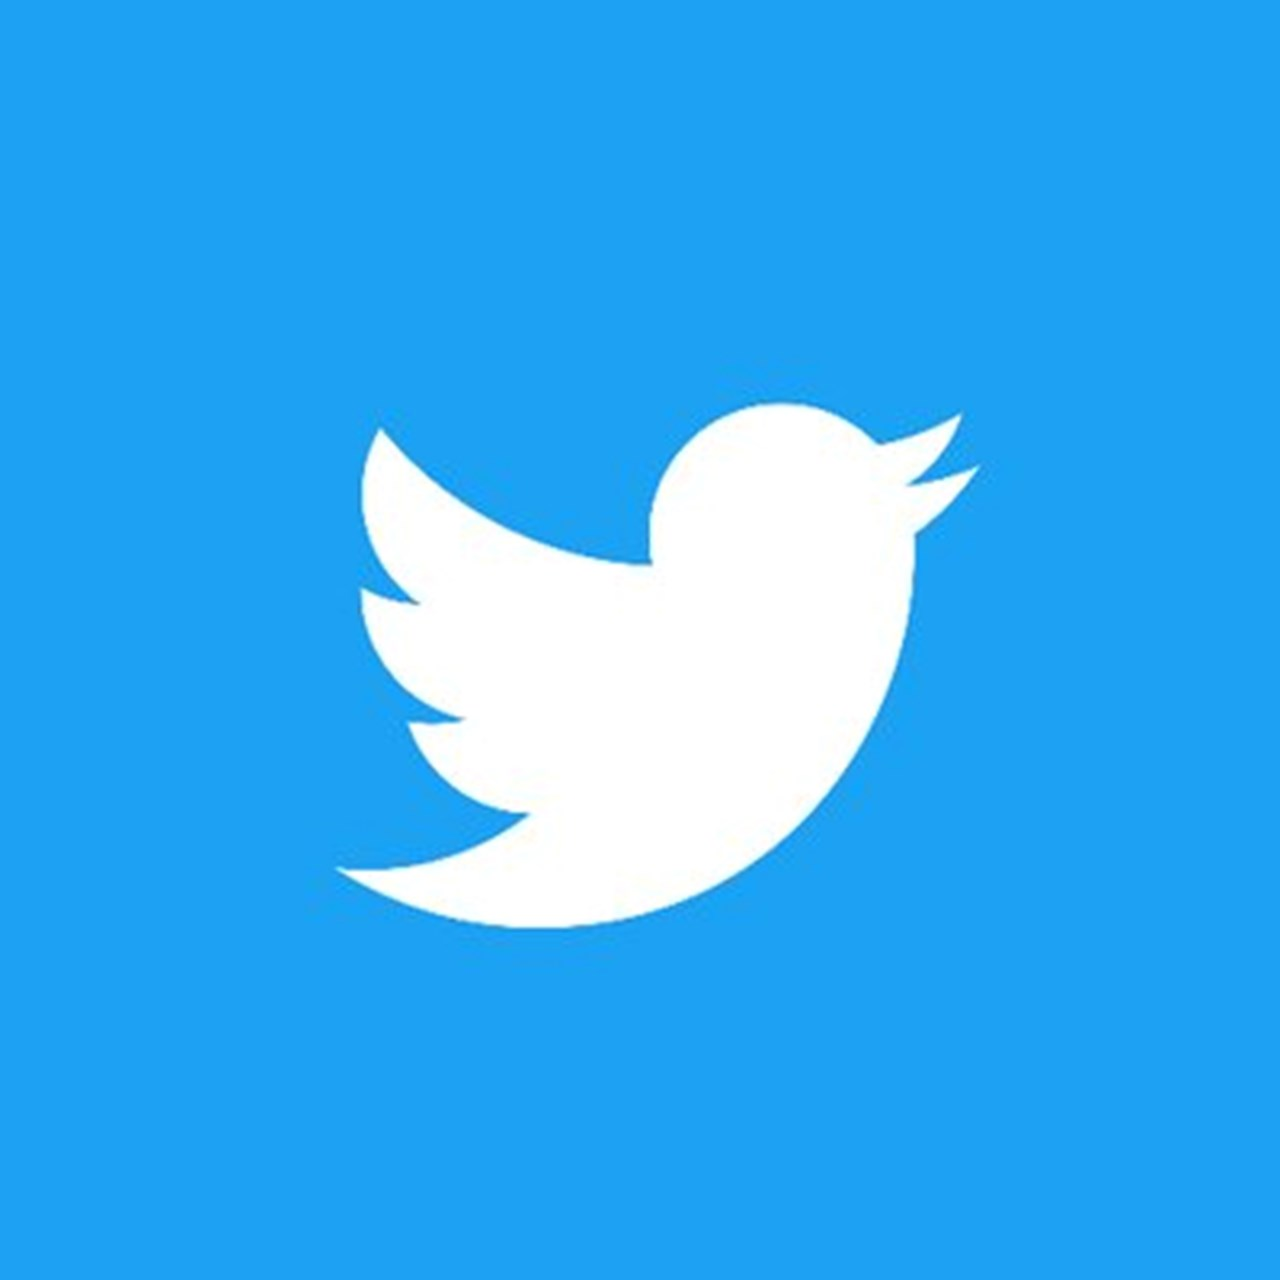 Ahead of US mid-term polls, Twitter launches 'BeAVoter' campaign